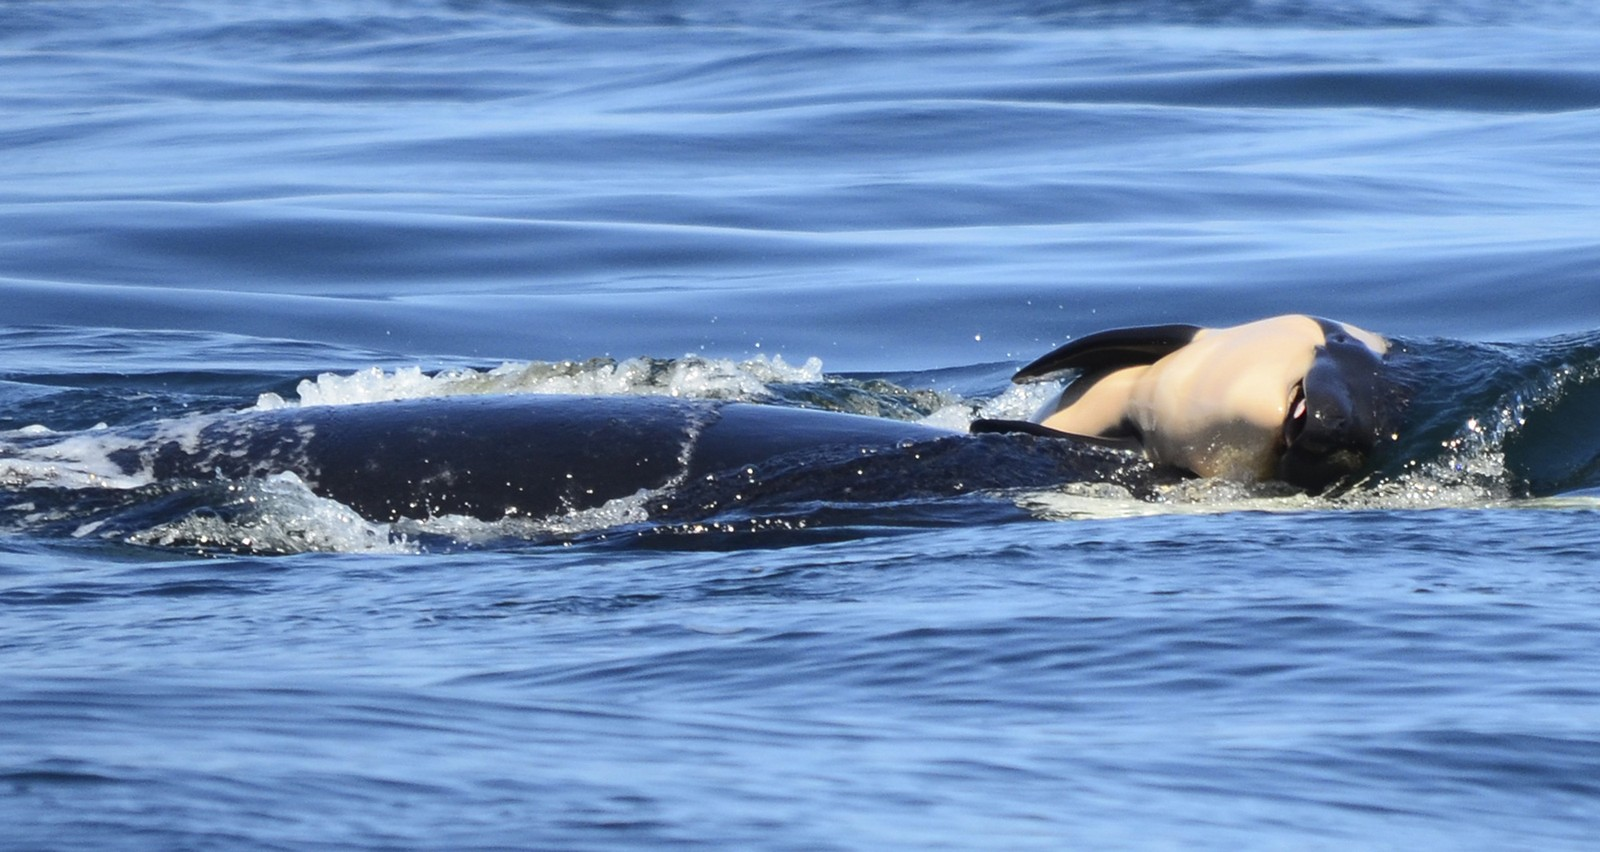 Foto: Facebook / Michael Weiss, Center for Whale Research